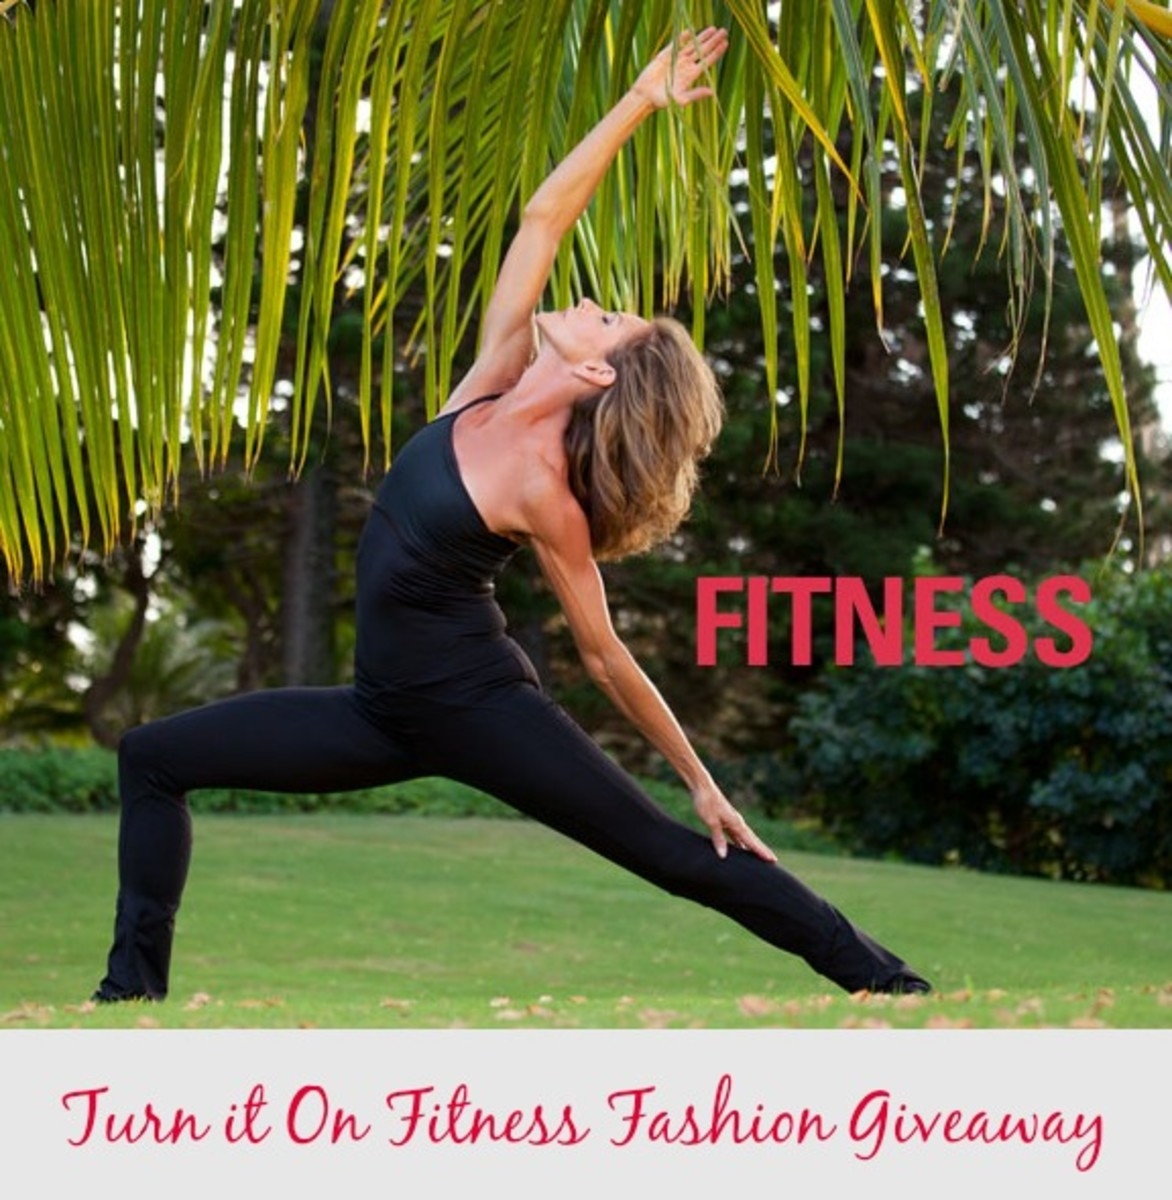 Turn-it-On-Fitness-Fashion-Giveaway-